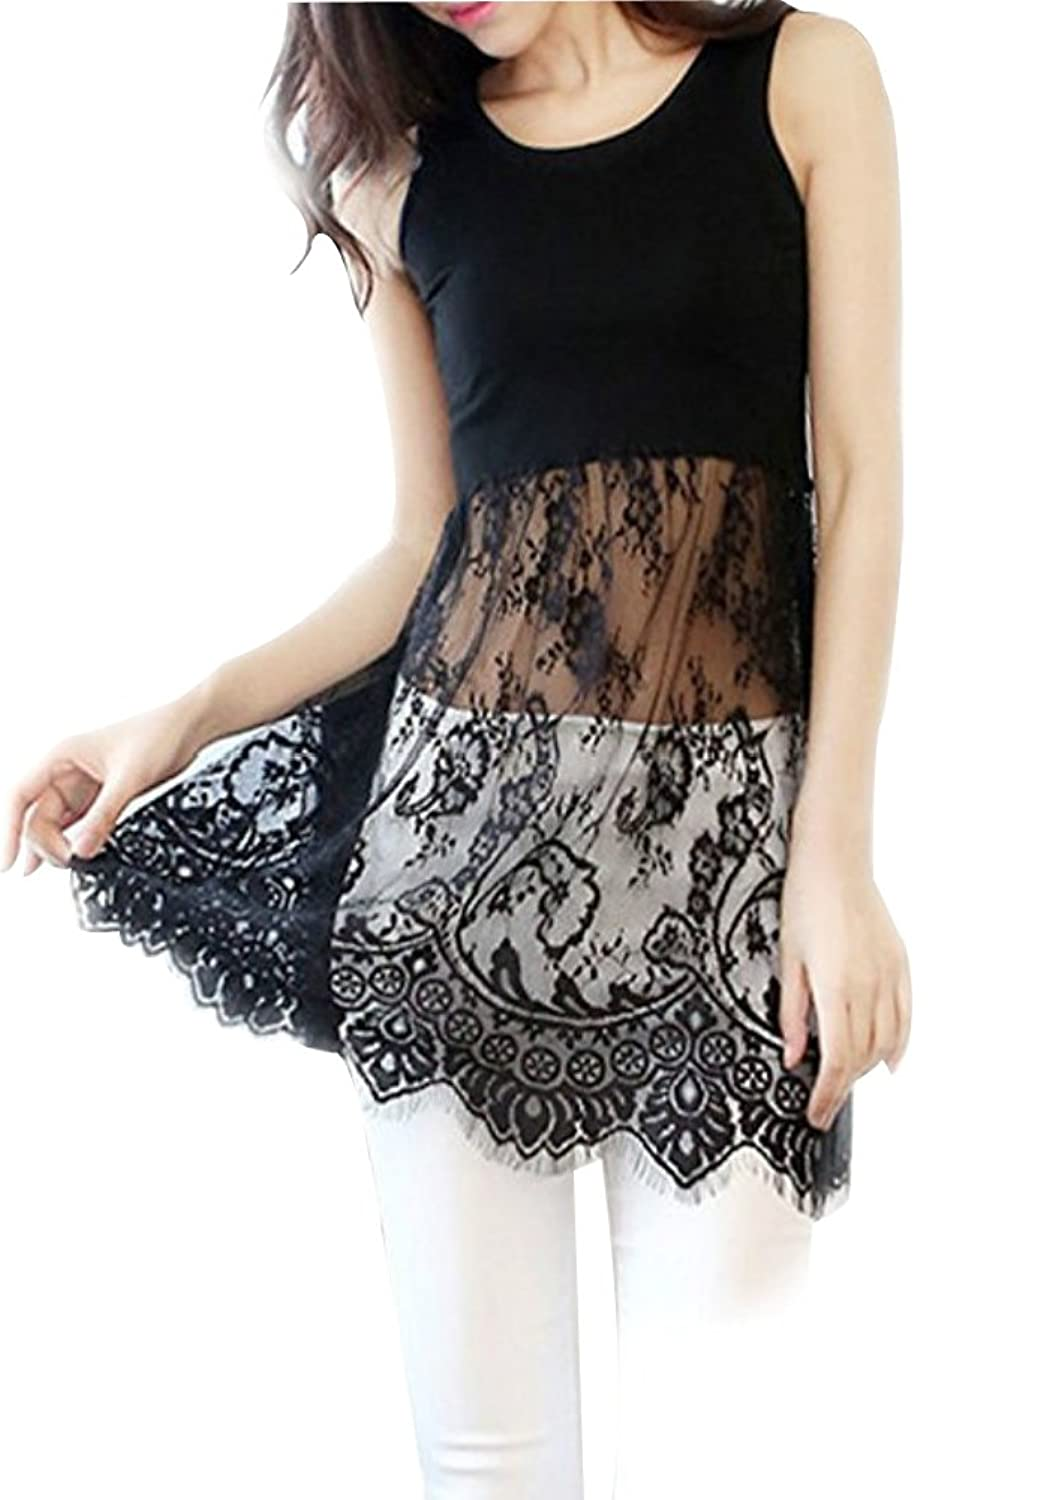 1128f262710 Women s lace trimmed long tank dress   top extender. Elegant see through lace  trim tank top dress for casual wear. It s long enough that you can wear it  as ...